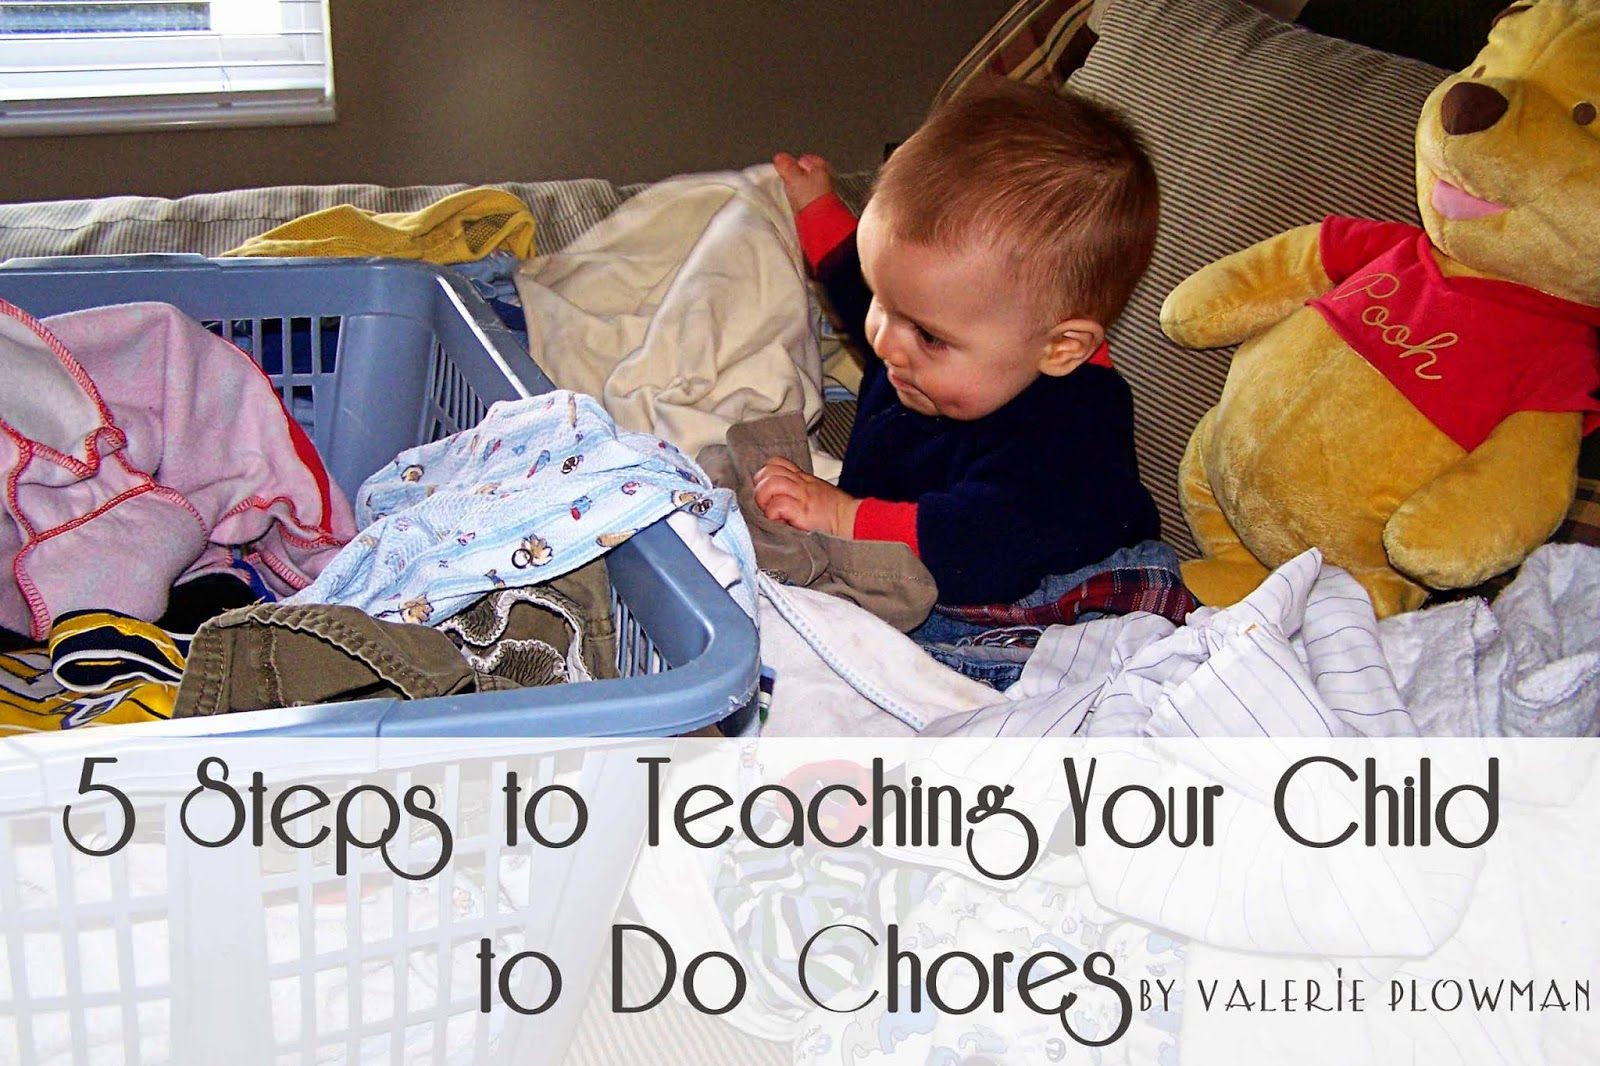 5 Steps to Teaching Your Child to do Chores